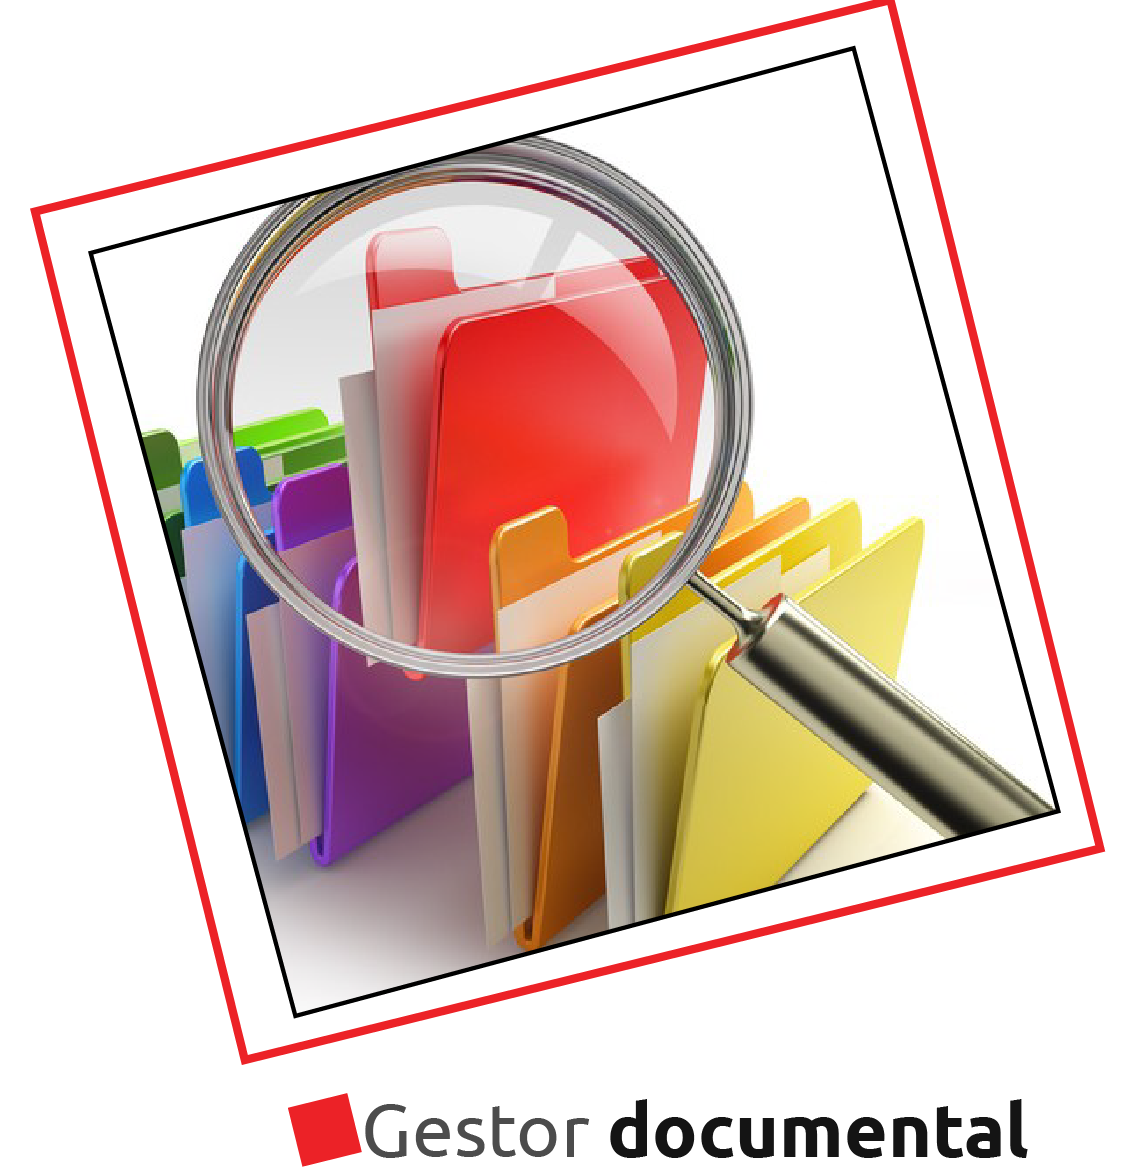 Gestor Documental